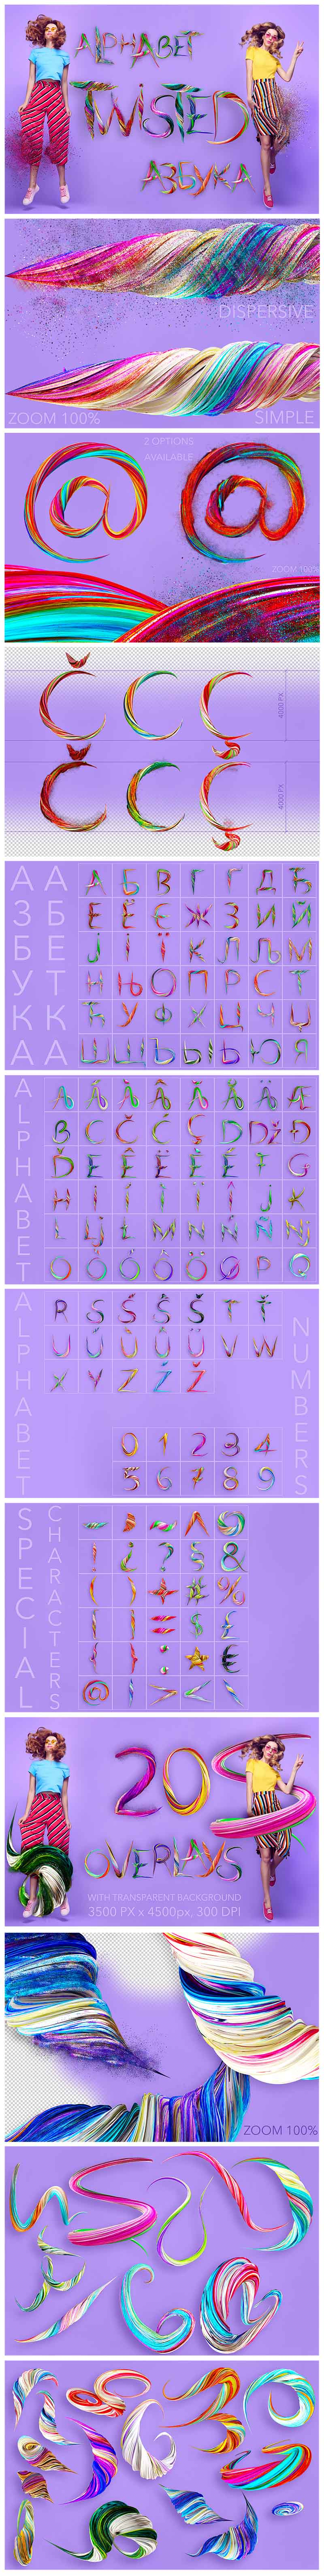 Huge Graphic Bundle Alphabet with 1000+ elements - $25 - Twisted min